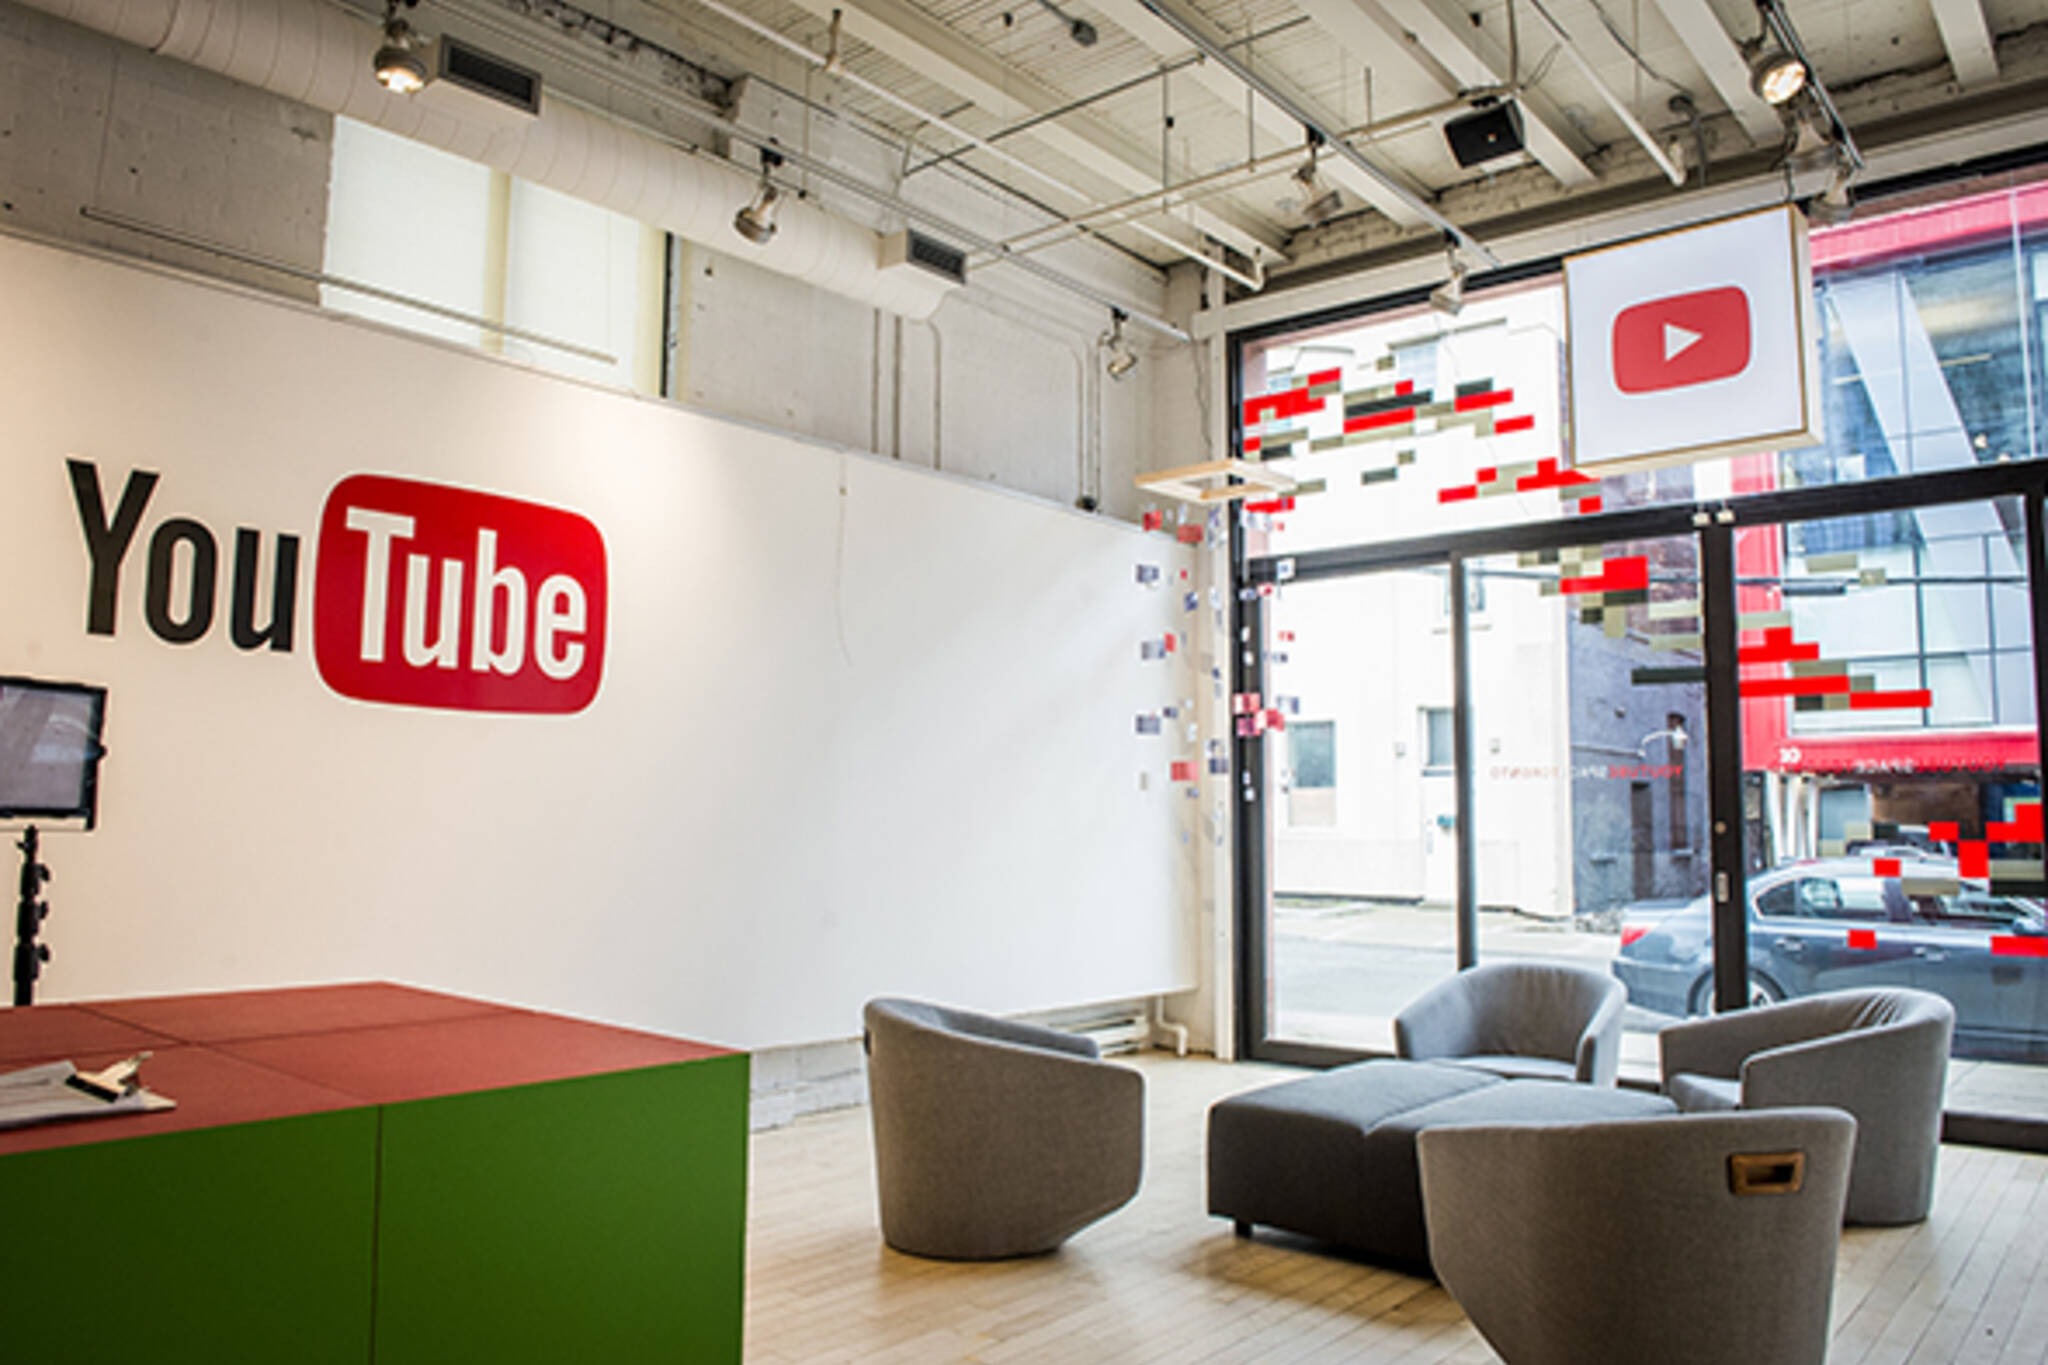 Youtube Opens Space For Video Creators In Toronto